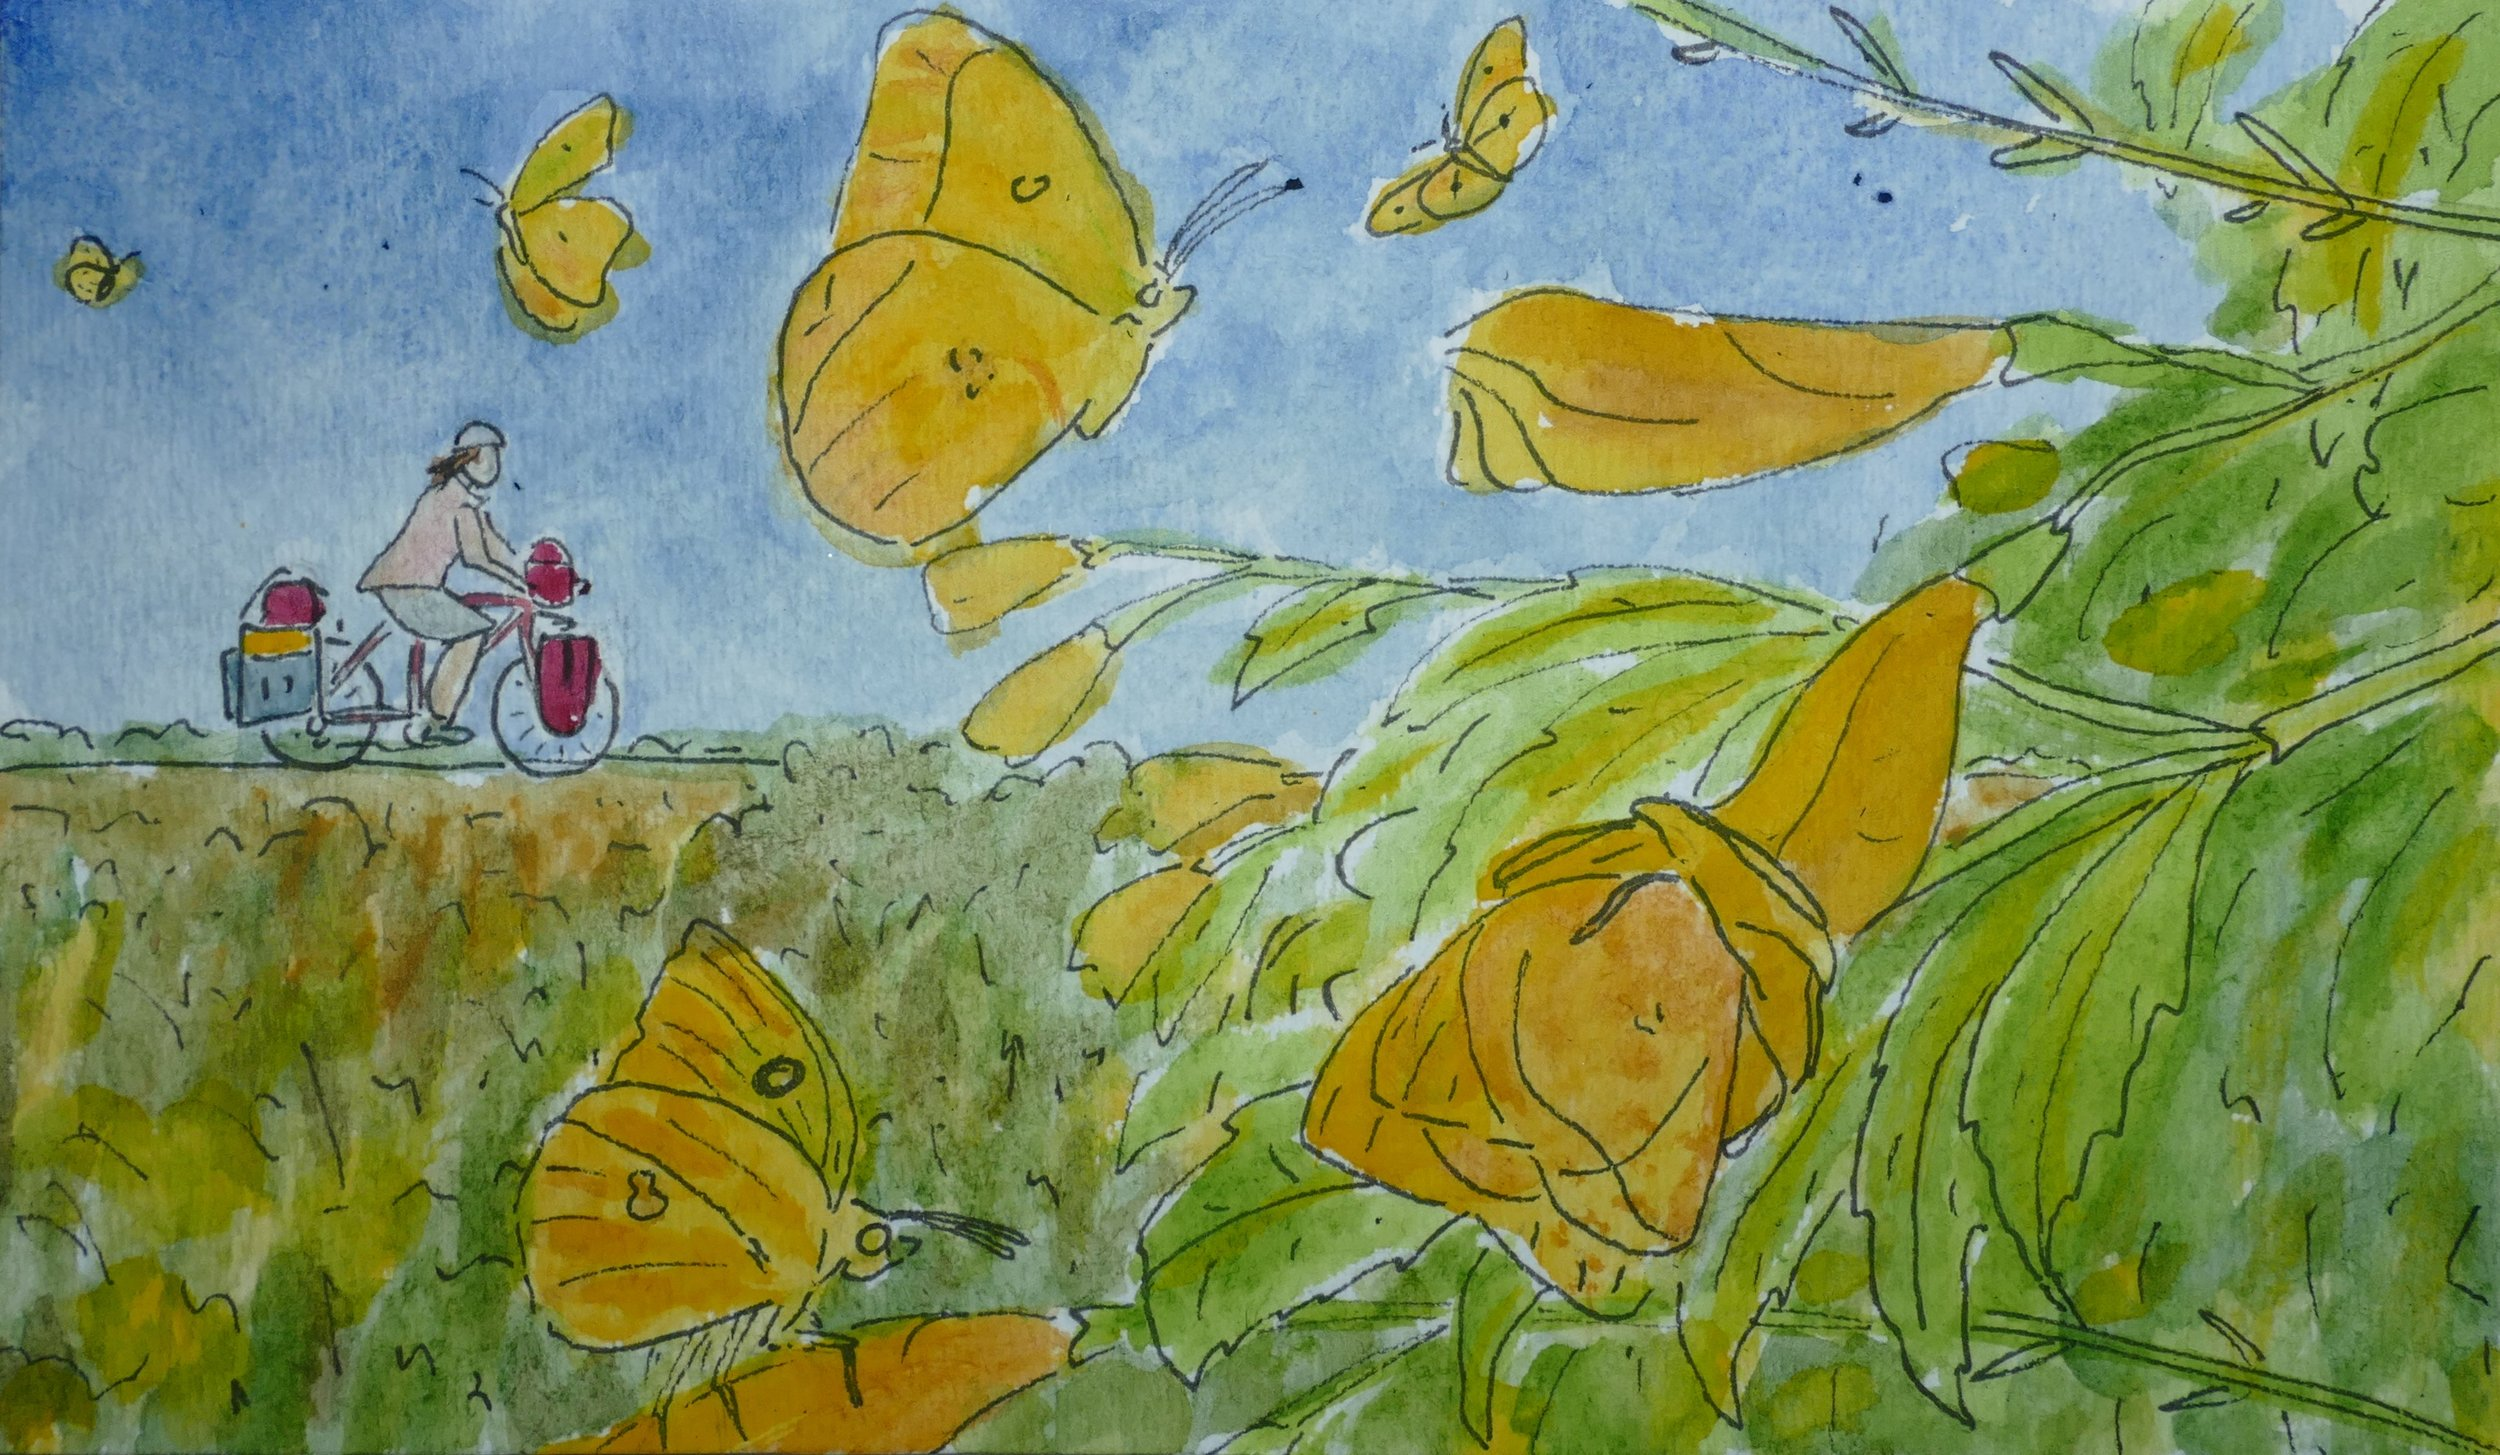 LL. Crossing into Mexico I was accompanied by a pilgrimage of yellow sulphur butterflies. Never had I seen so many before.